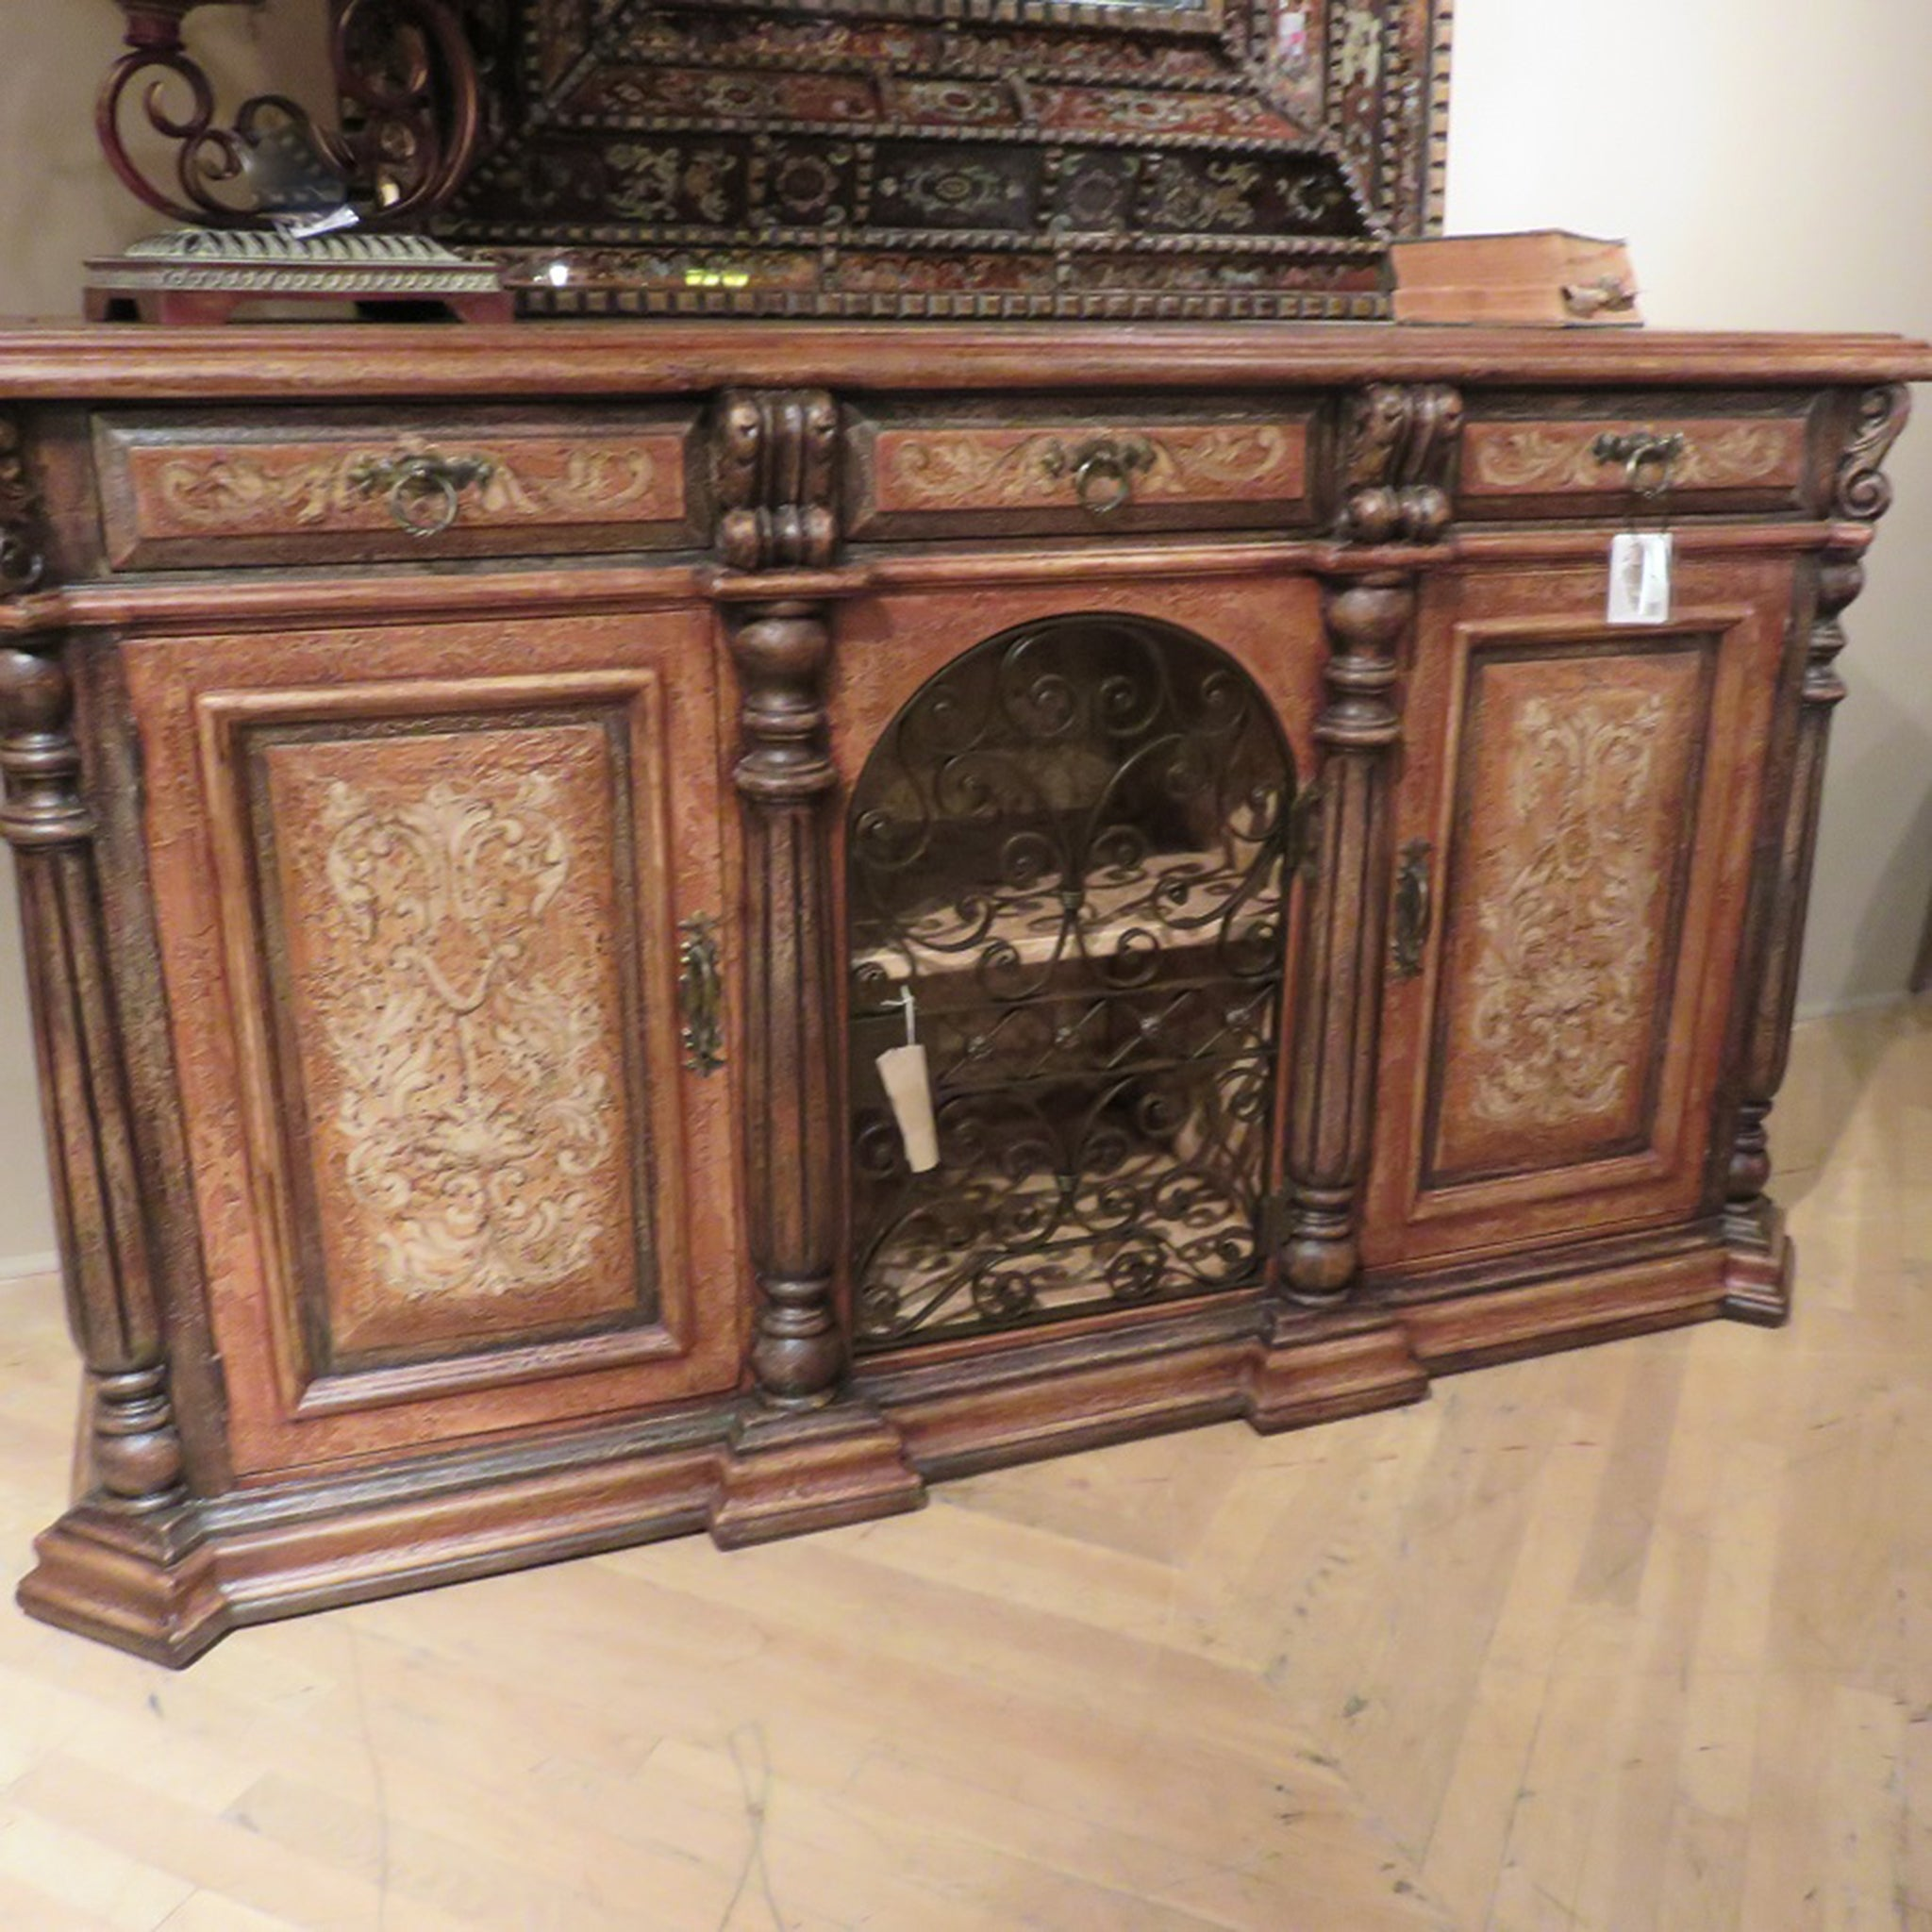 Olde World Hand Painted Rustic Iron Sideboard Buffet with Wrought Iron Scroll Doors - Furniture on Main